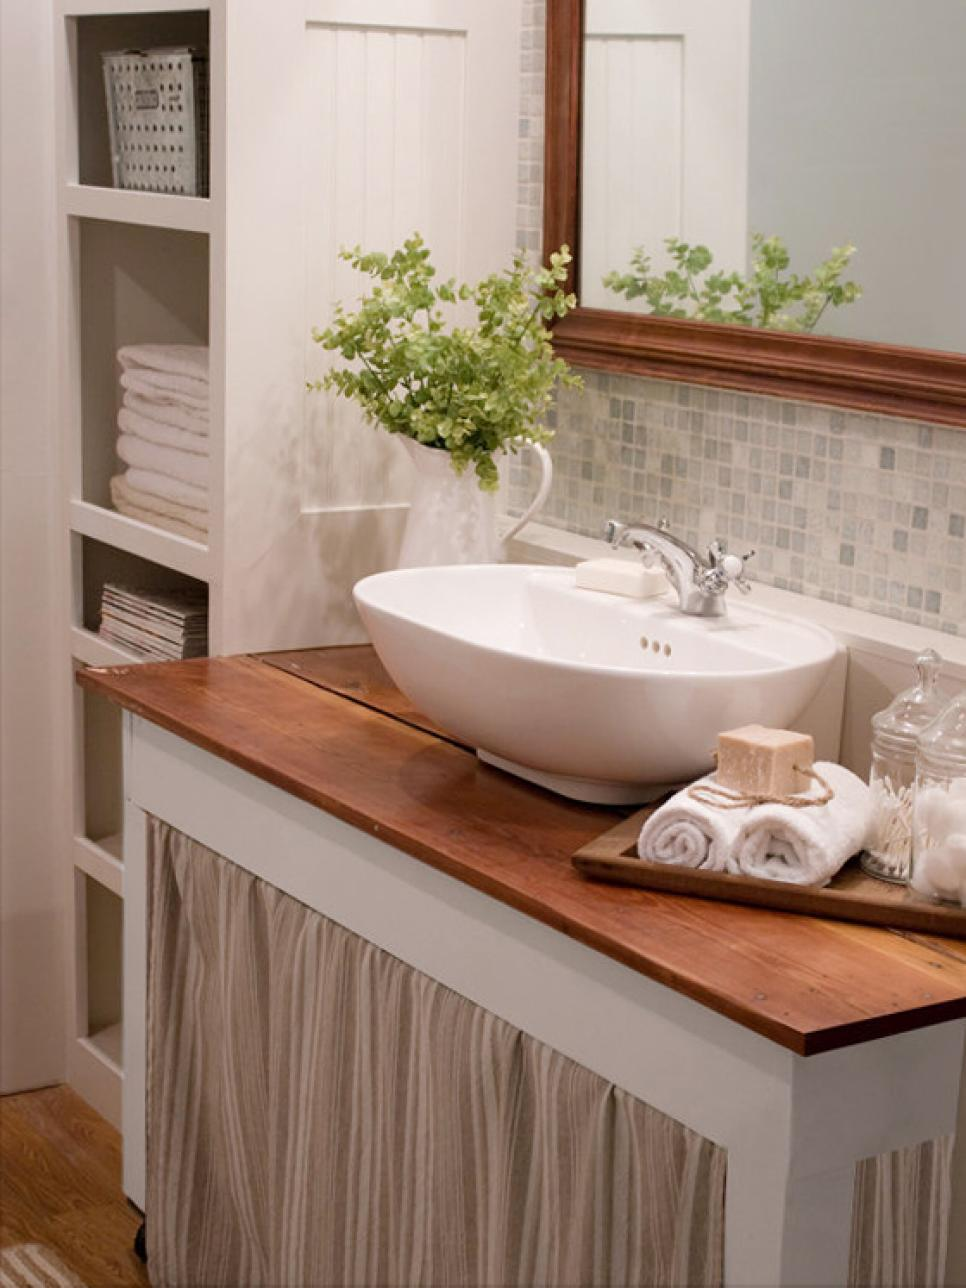 Small Bathroom Ideas 20 small bathroom design ideas | hgtv